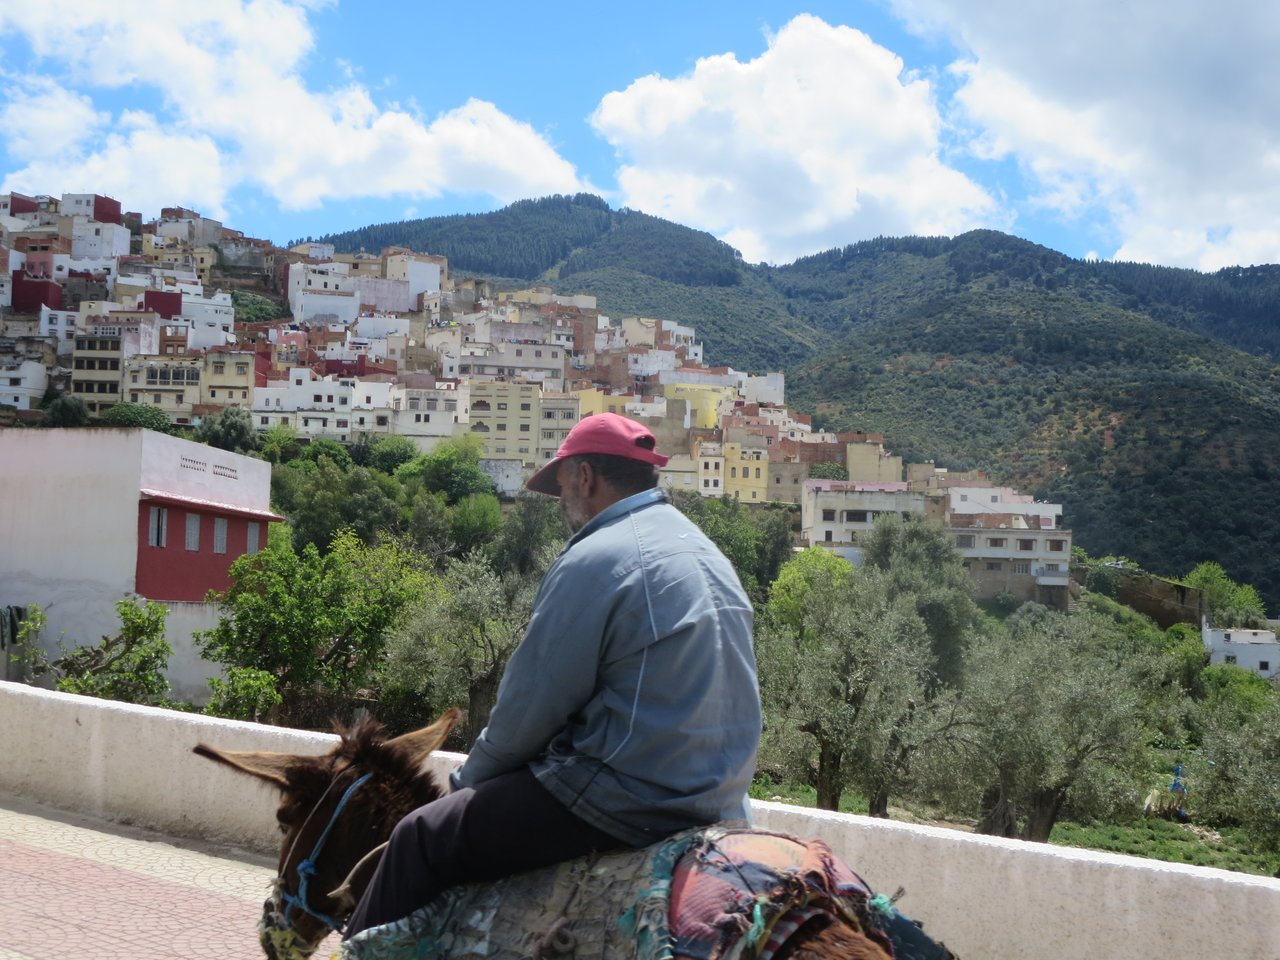 Overlooking Moulay Idriss | Photo taken by Eileen S